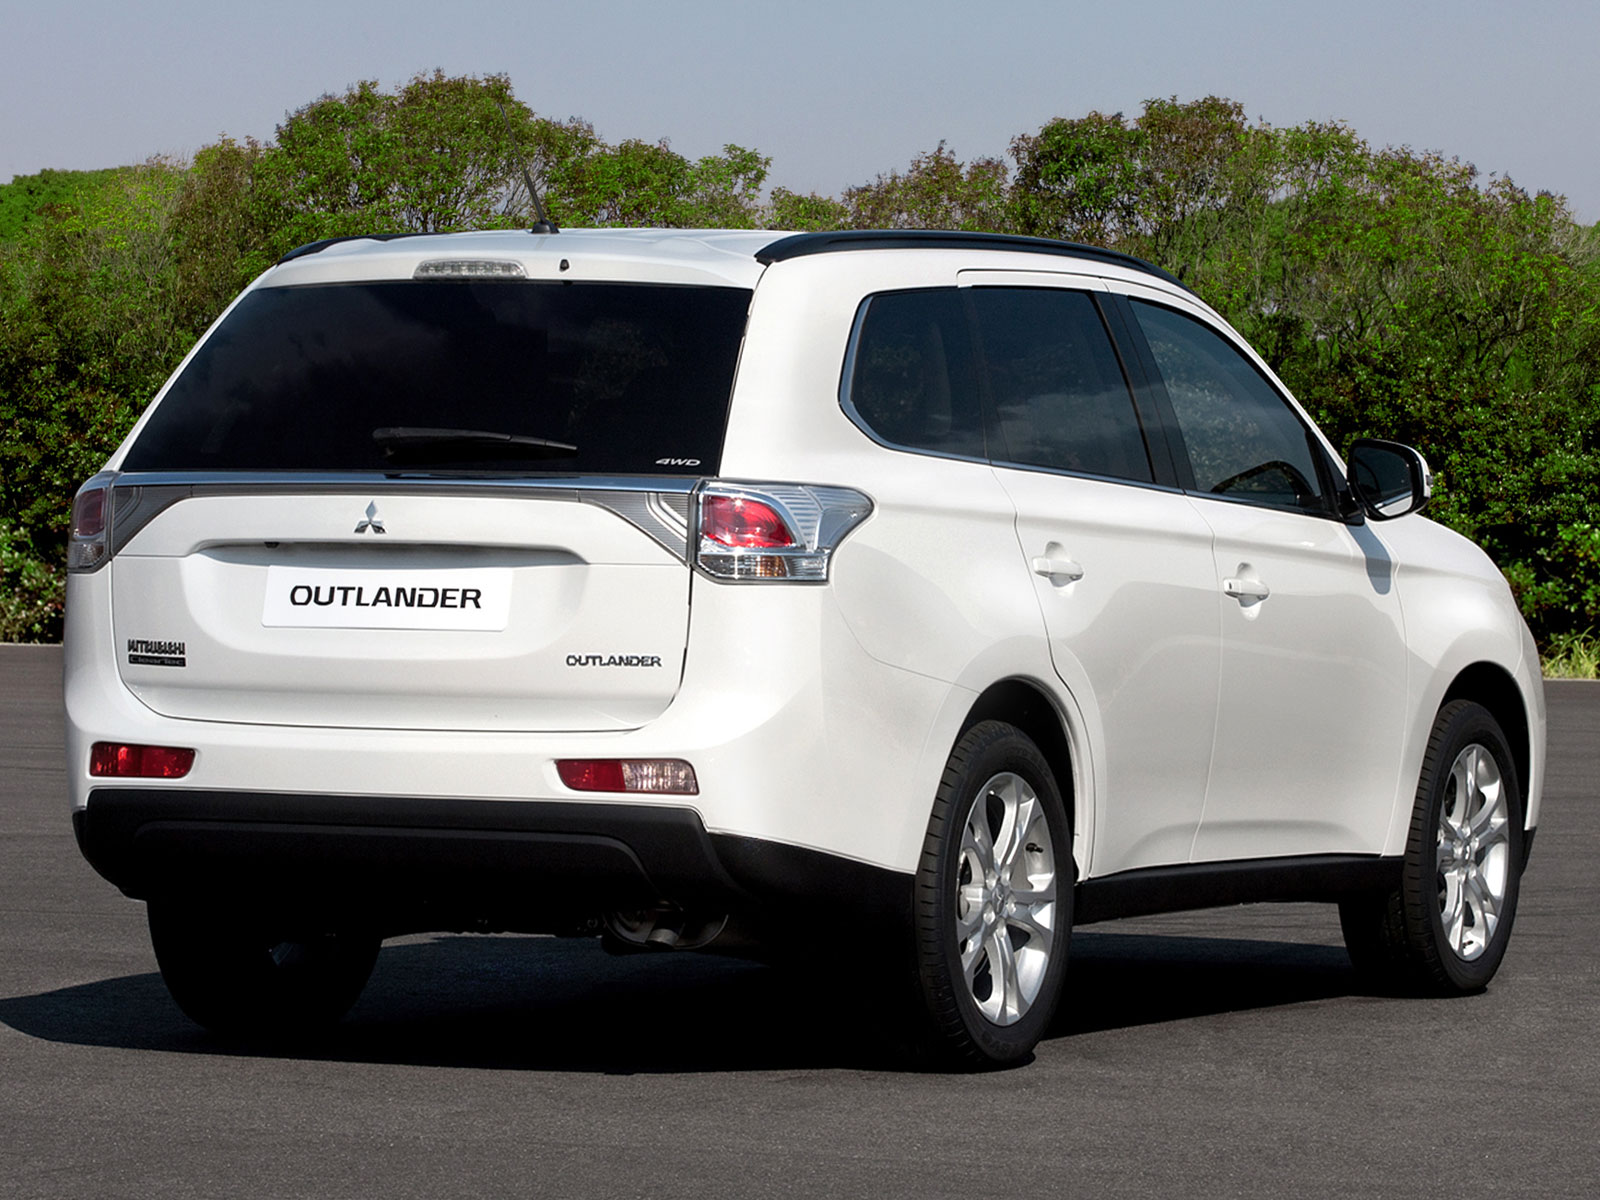 2019 mitsubishi outlander es car photos catalog 2019. Black Bedroom Furniture Sets. Home Design Ideas